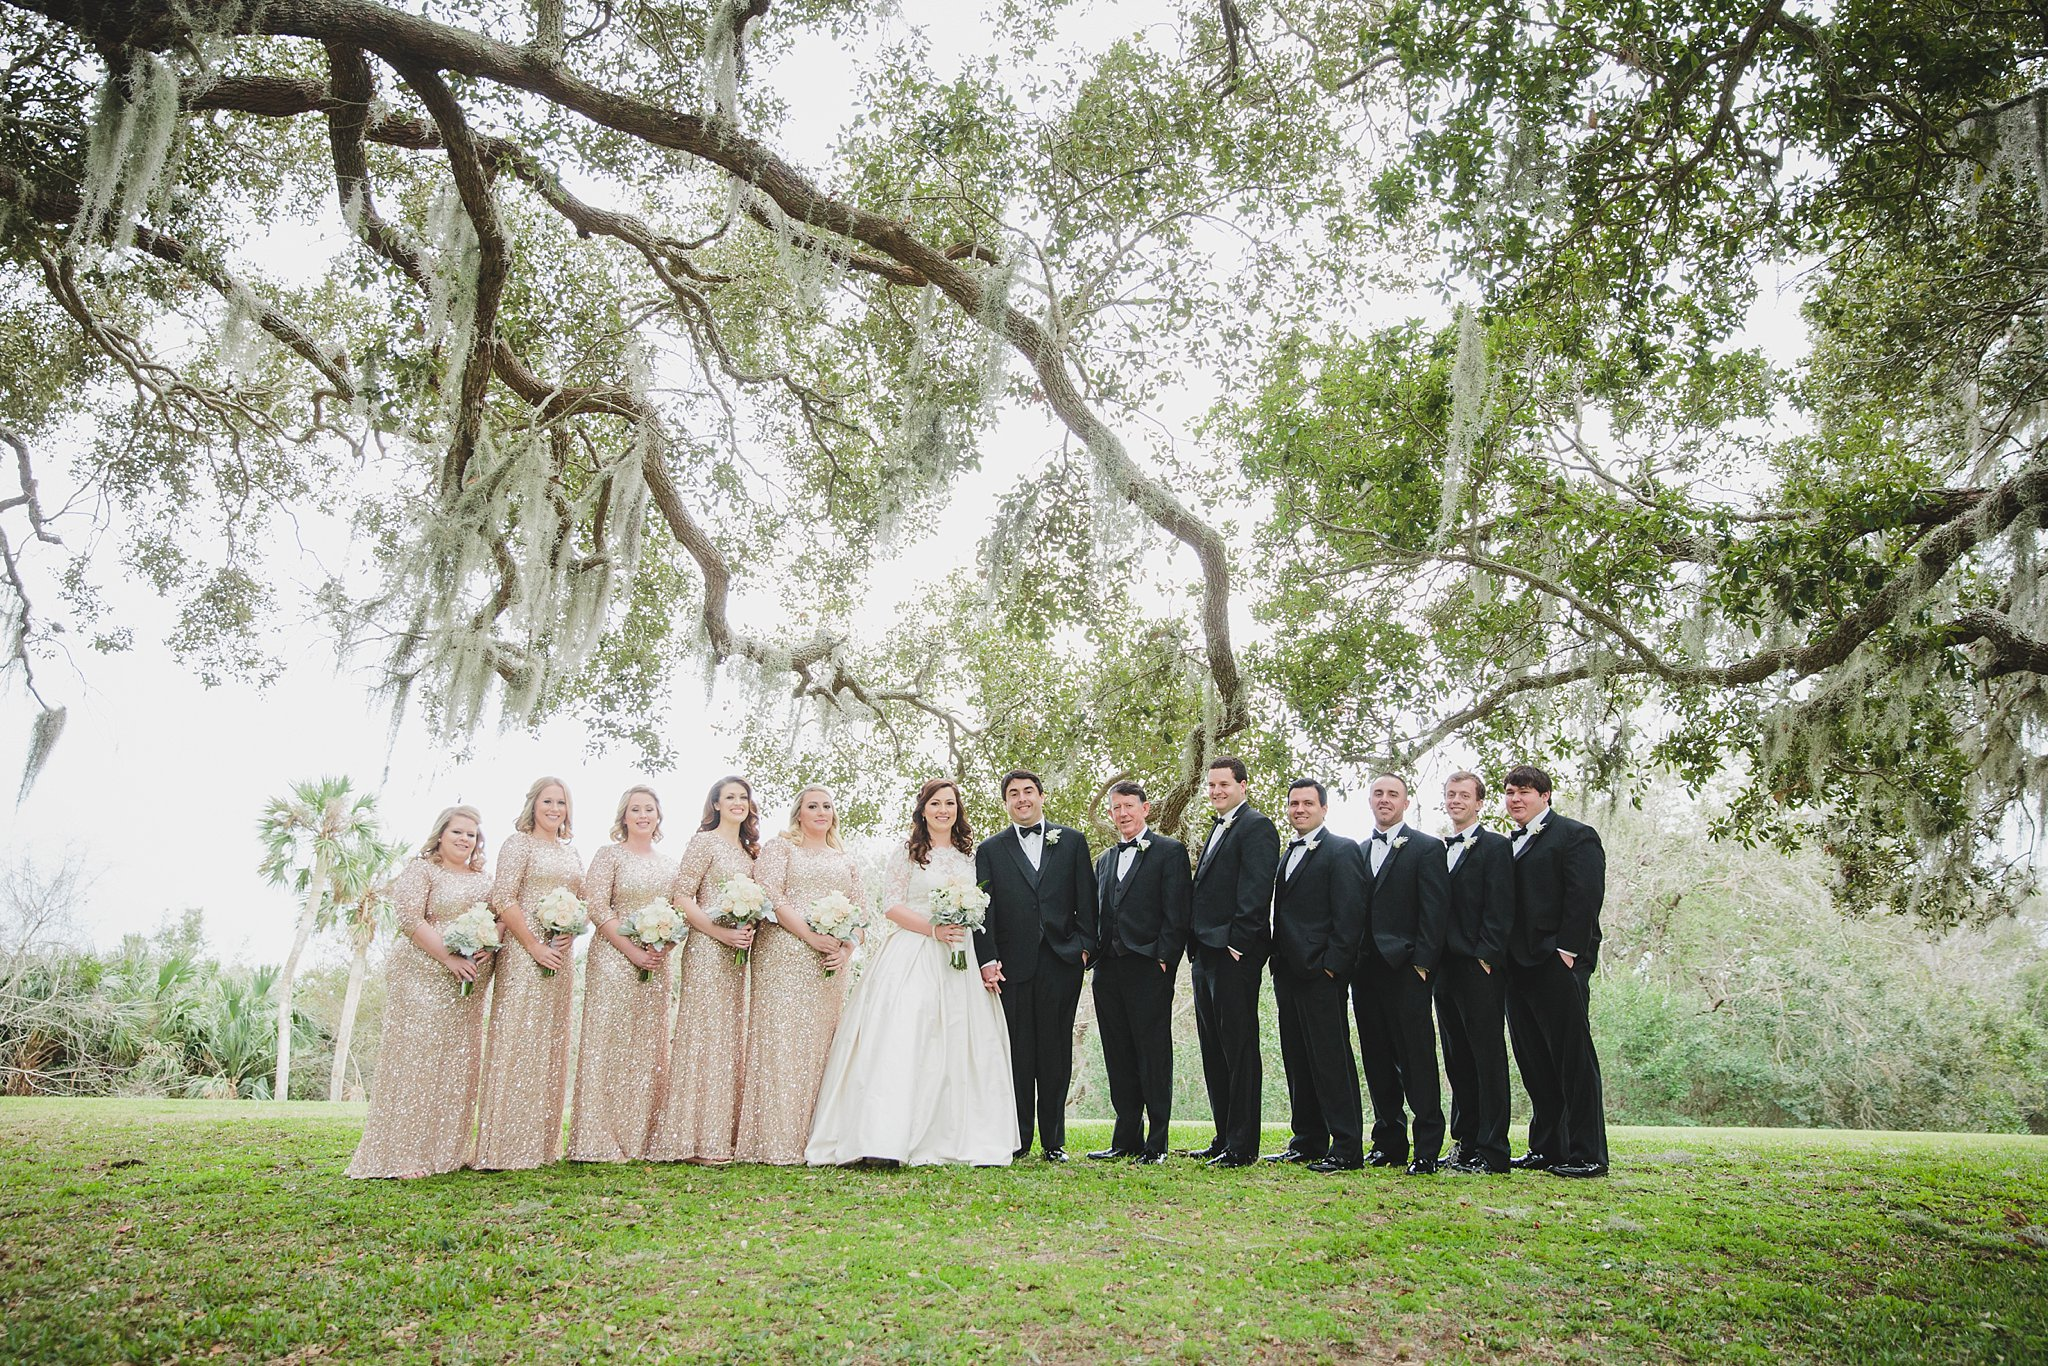 destination wedding photographer,florida,florida wedding photographer,jacksonville wedding photographer,photographer,ribault club,ribault club wedding,sea island,st. augustine,st. augustine photographer,stephanie w photography,wedding,winter wedding,